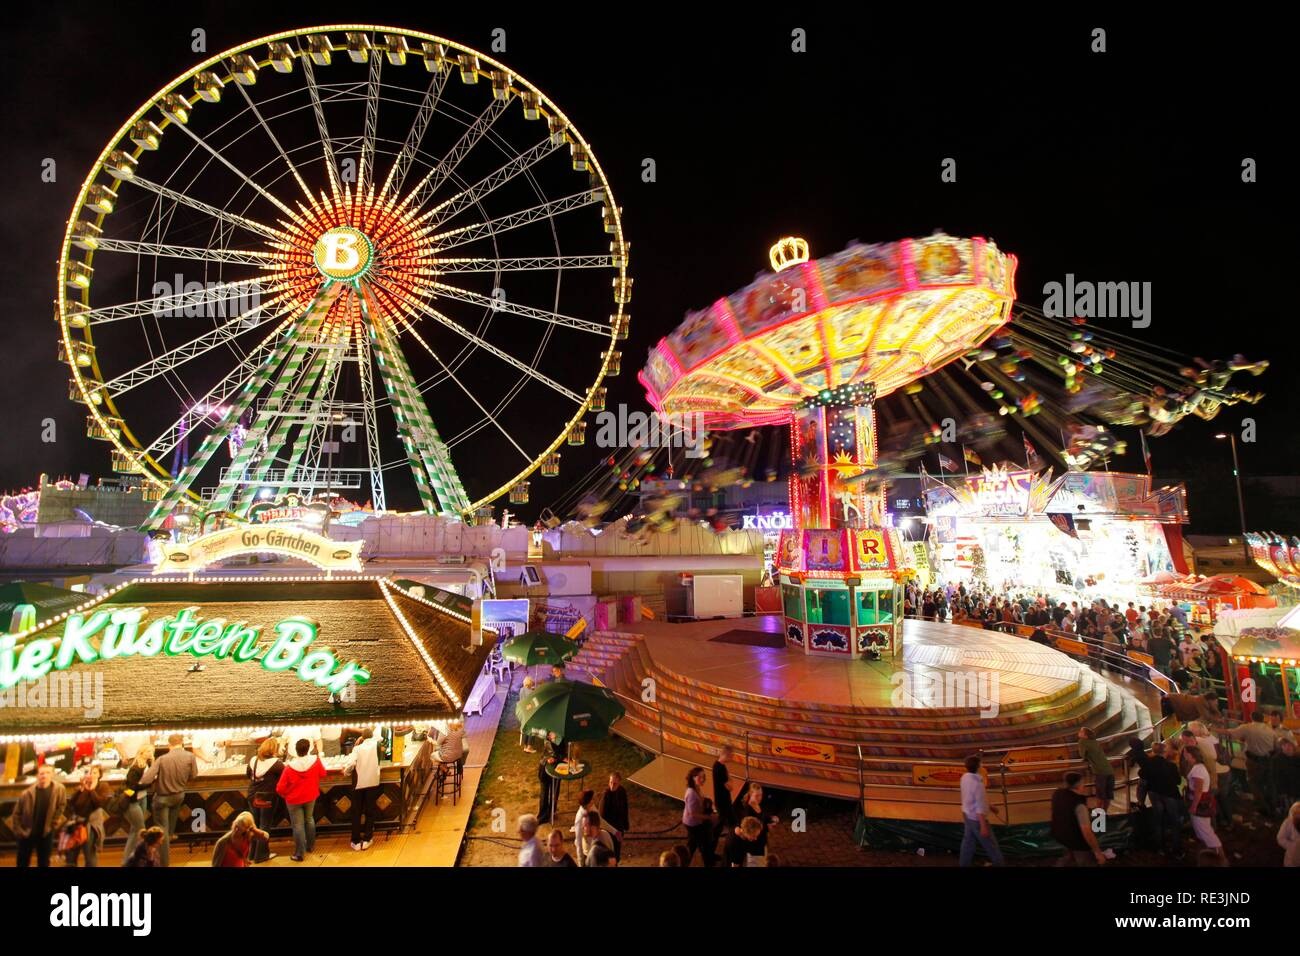 Cranger Kirmes fair, the biggest fair in the Ruhr area, at the Rhine-Herne Canal, Herne, North Rhine-Westphalia - Stock Image